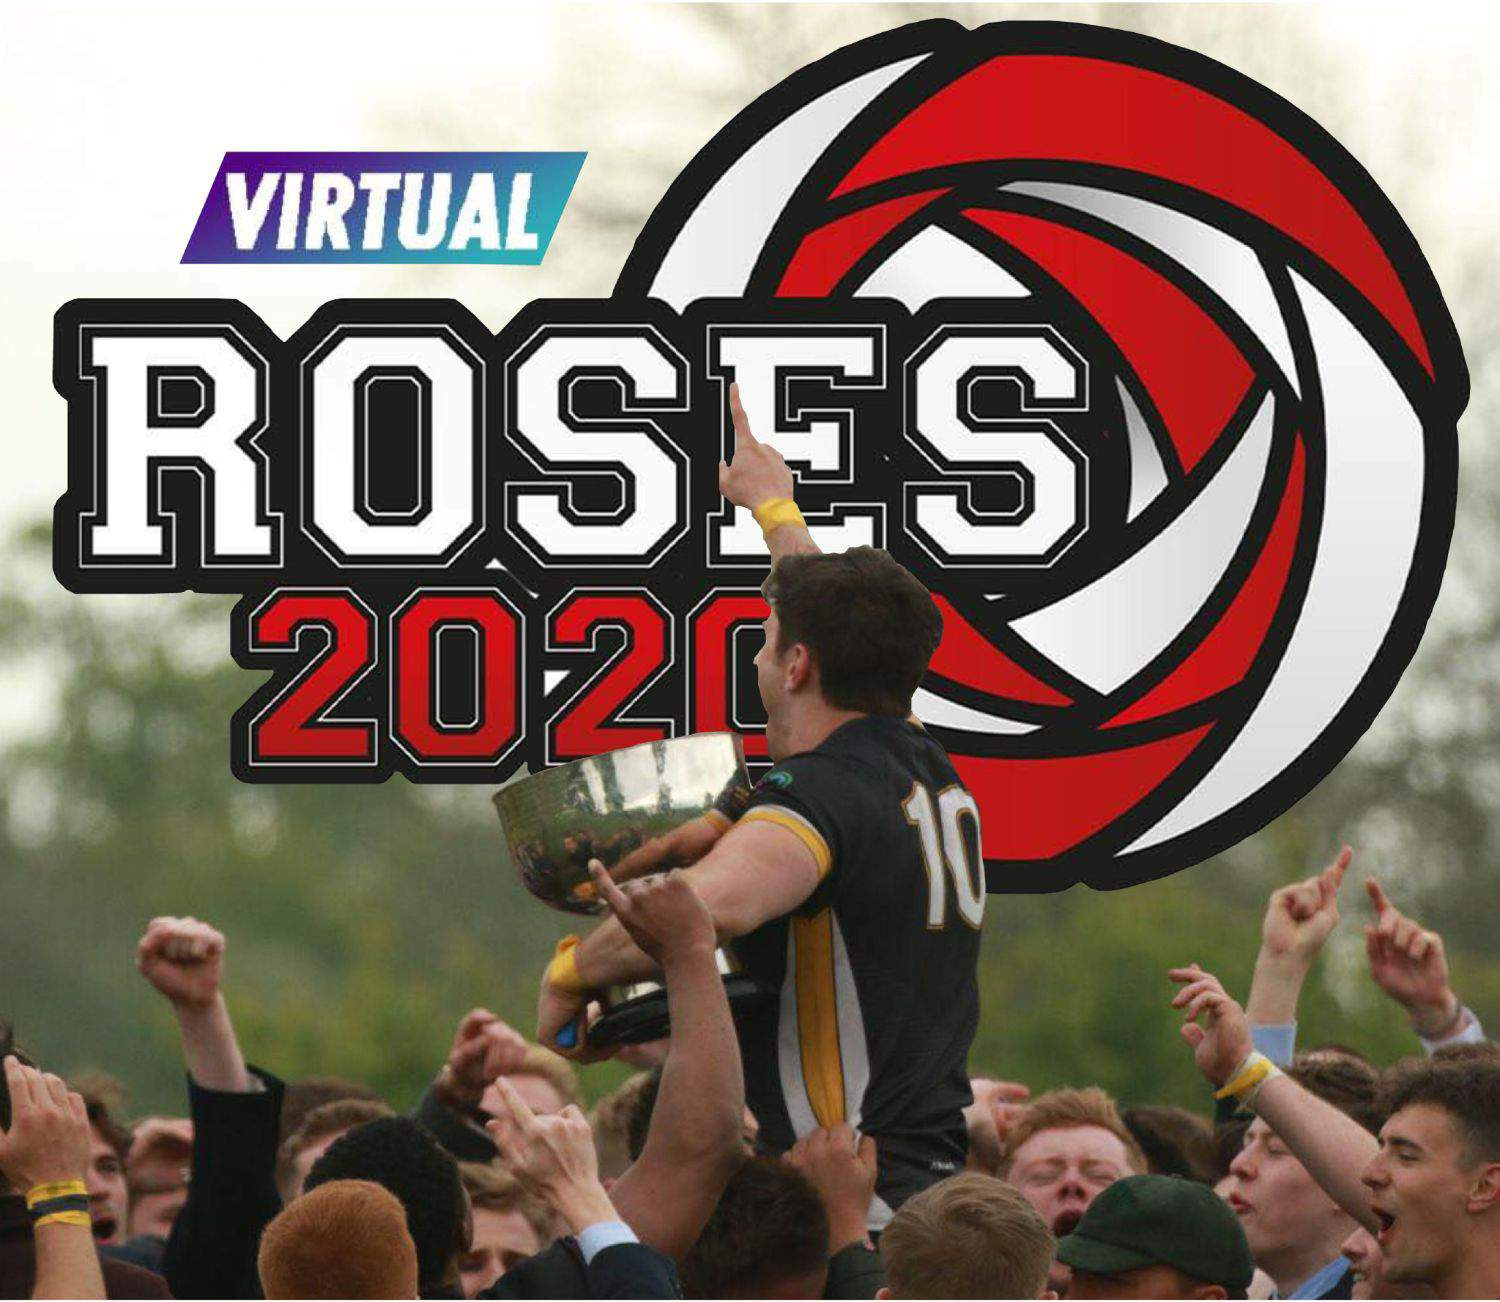 York win 'Virtual Roses' and raise over £4000 for charity